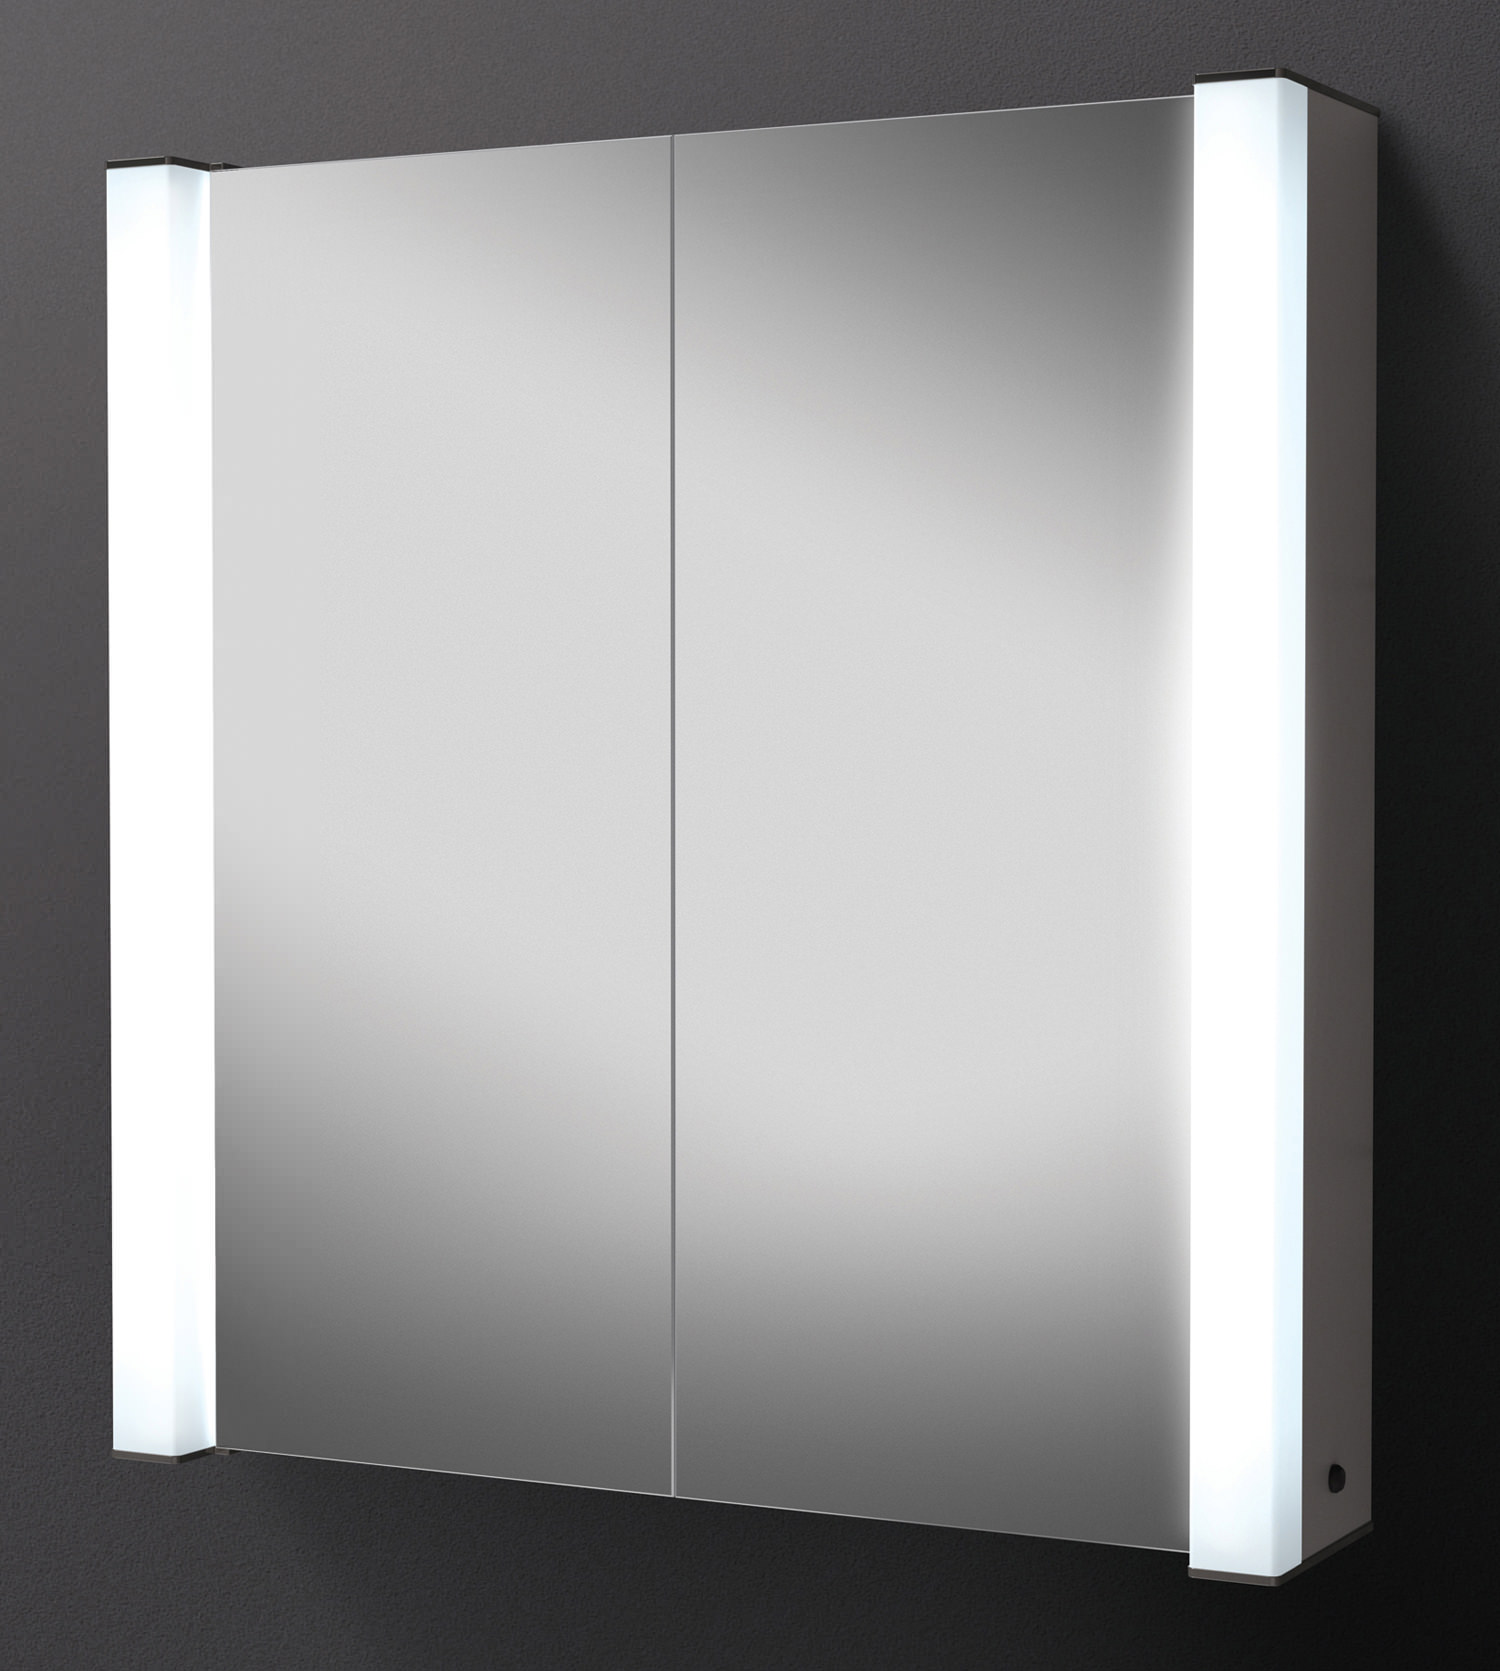 illuminated bathroom mirror cabinet hib photec door illuminated aluminium mirrored 18859